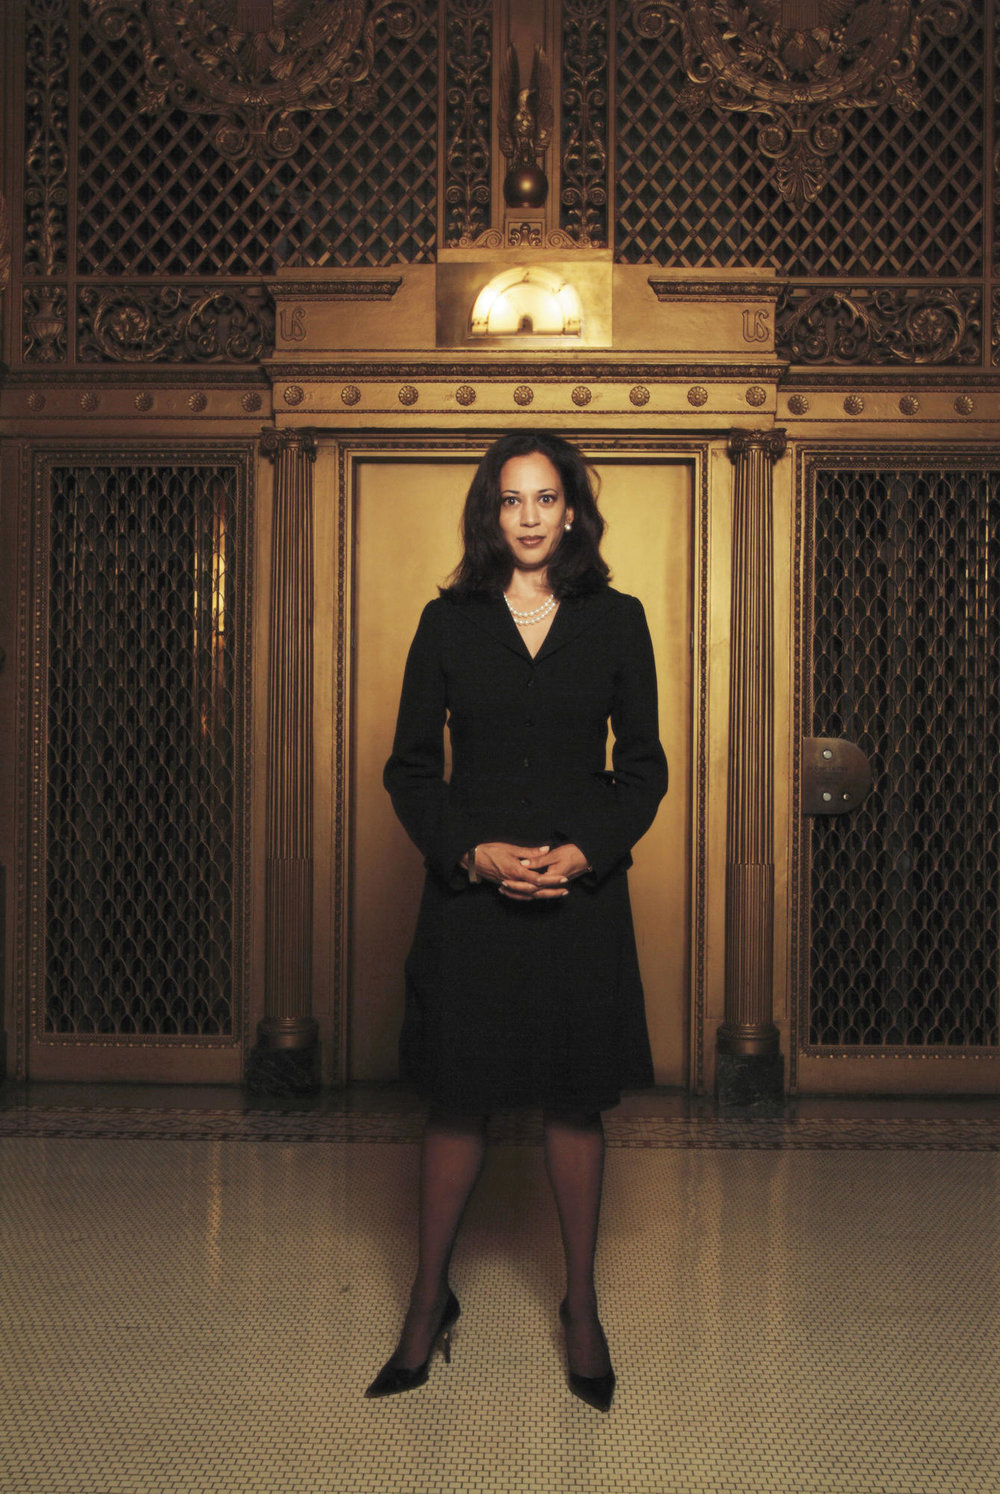 Kamala Harris - First Indian American to be elected to the senate. First female, first African American, and first Indian American attorney general in California. Watch out for a presidential run in 2020.